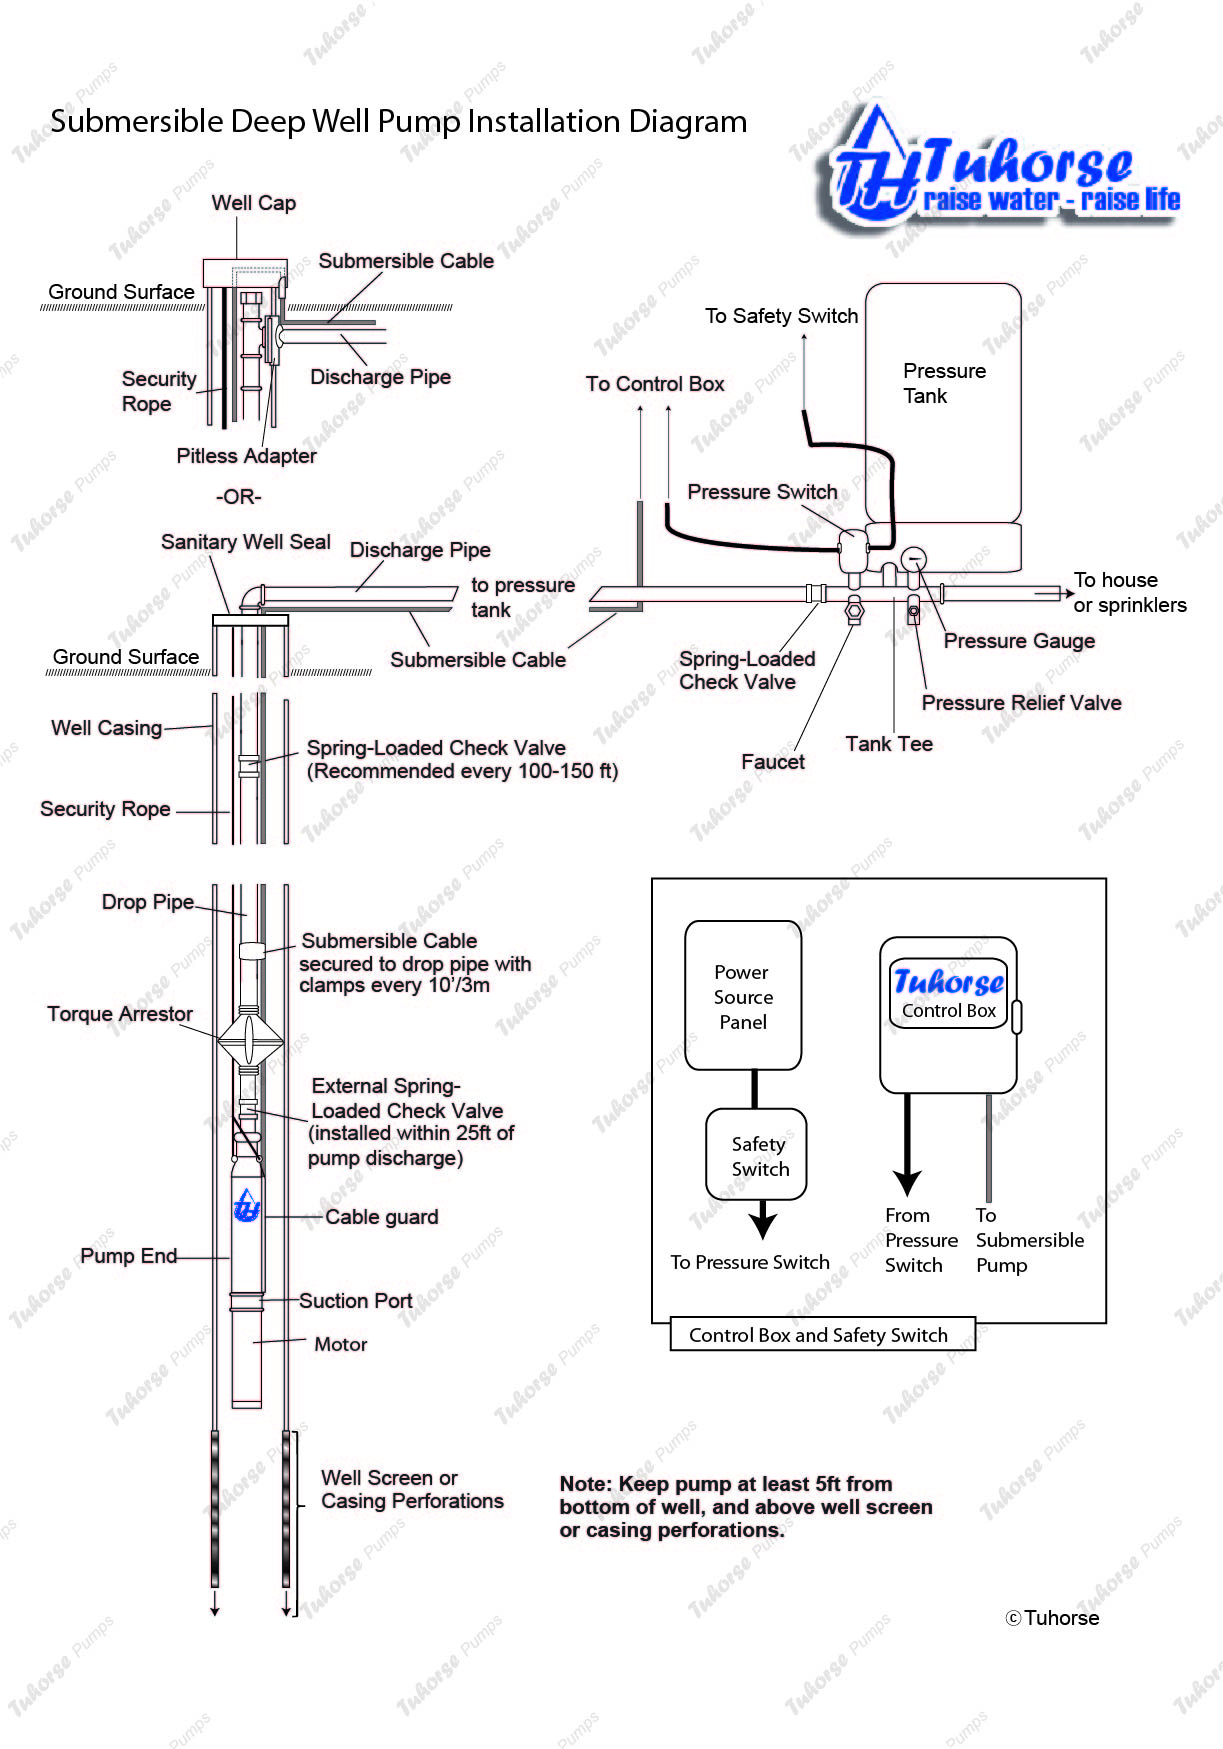 watermarkedinstallationdiagram4 pump installation wiring diagram for submersible pump control box at edmiracle.co